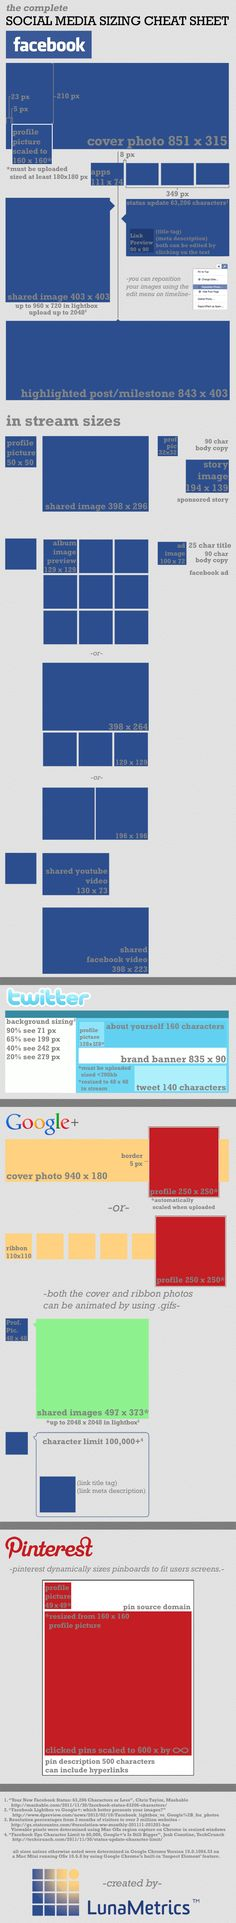 Social Media Sizing Cheat Sheet showing dimensions of elements on your accounts for Facebook, Twitter, Google+, and Pinterest.